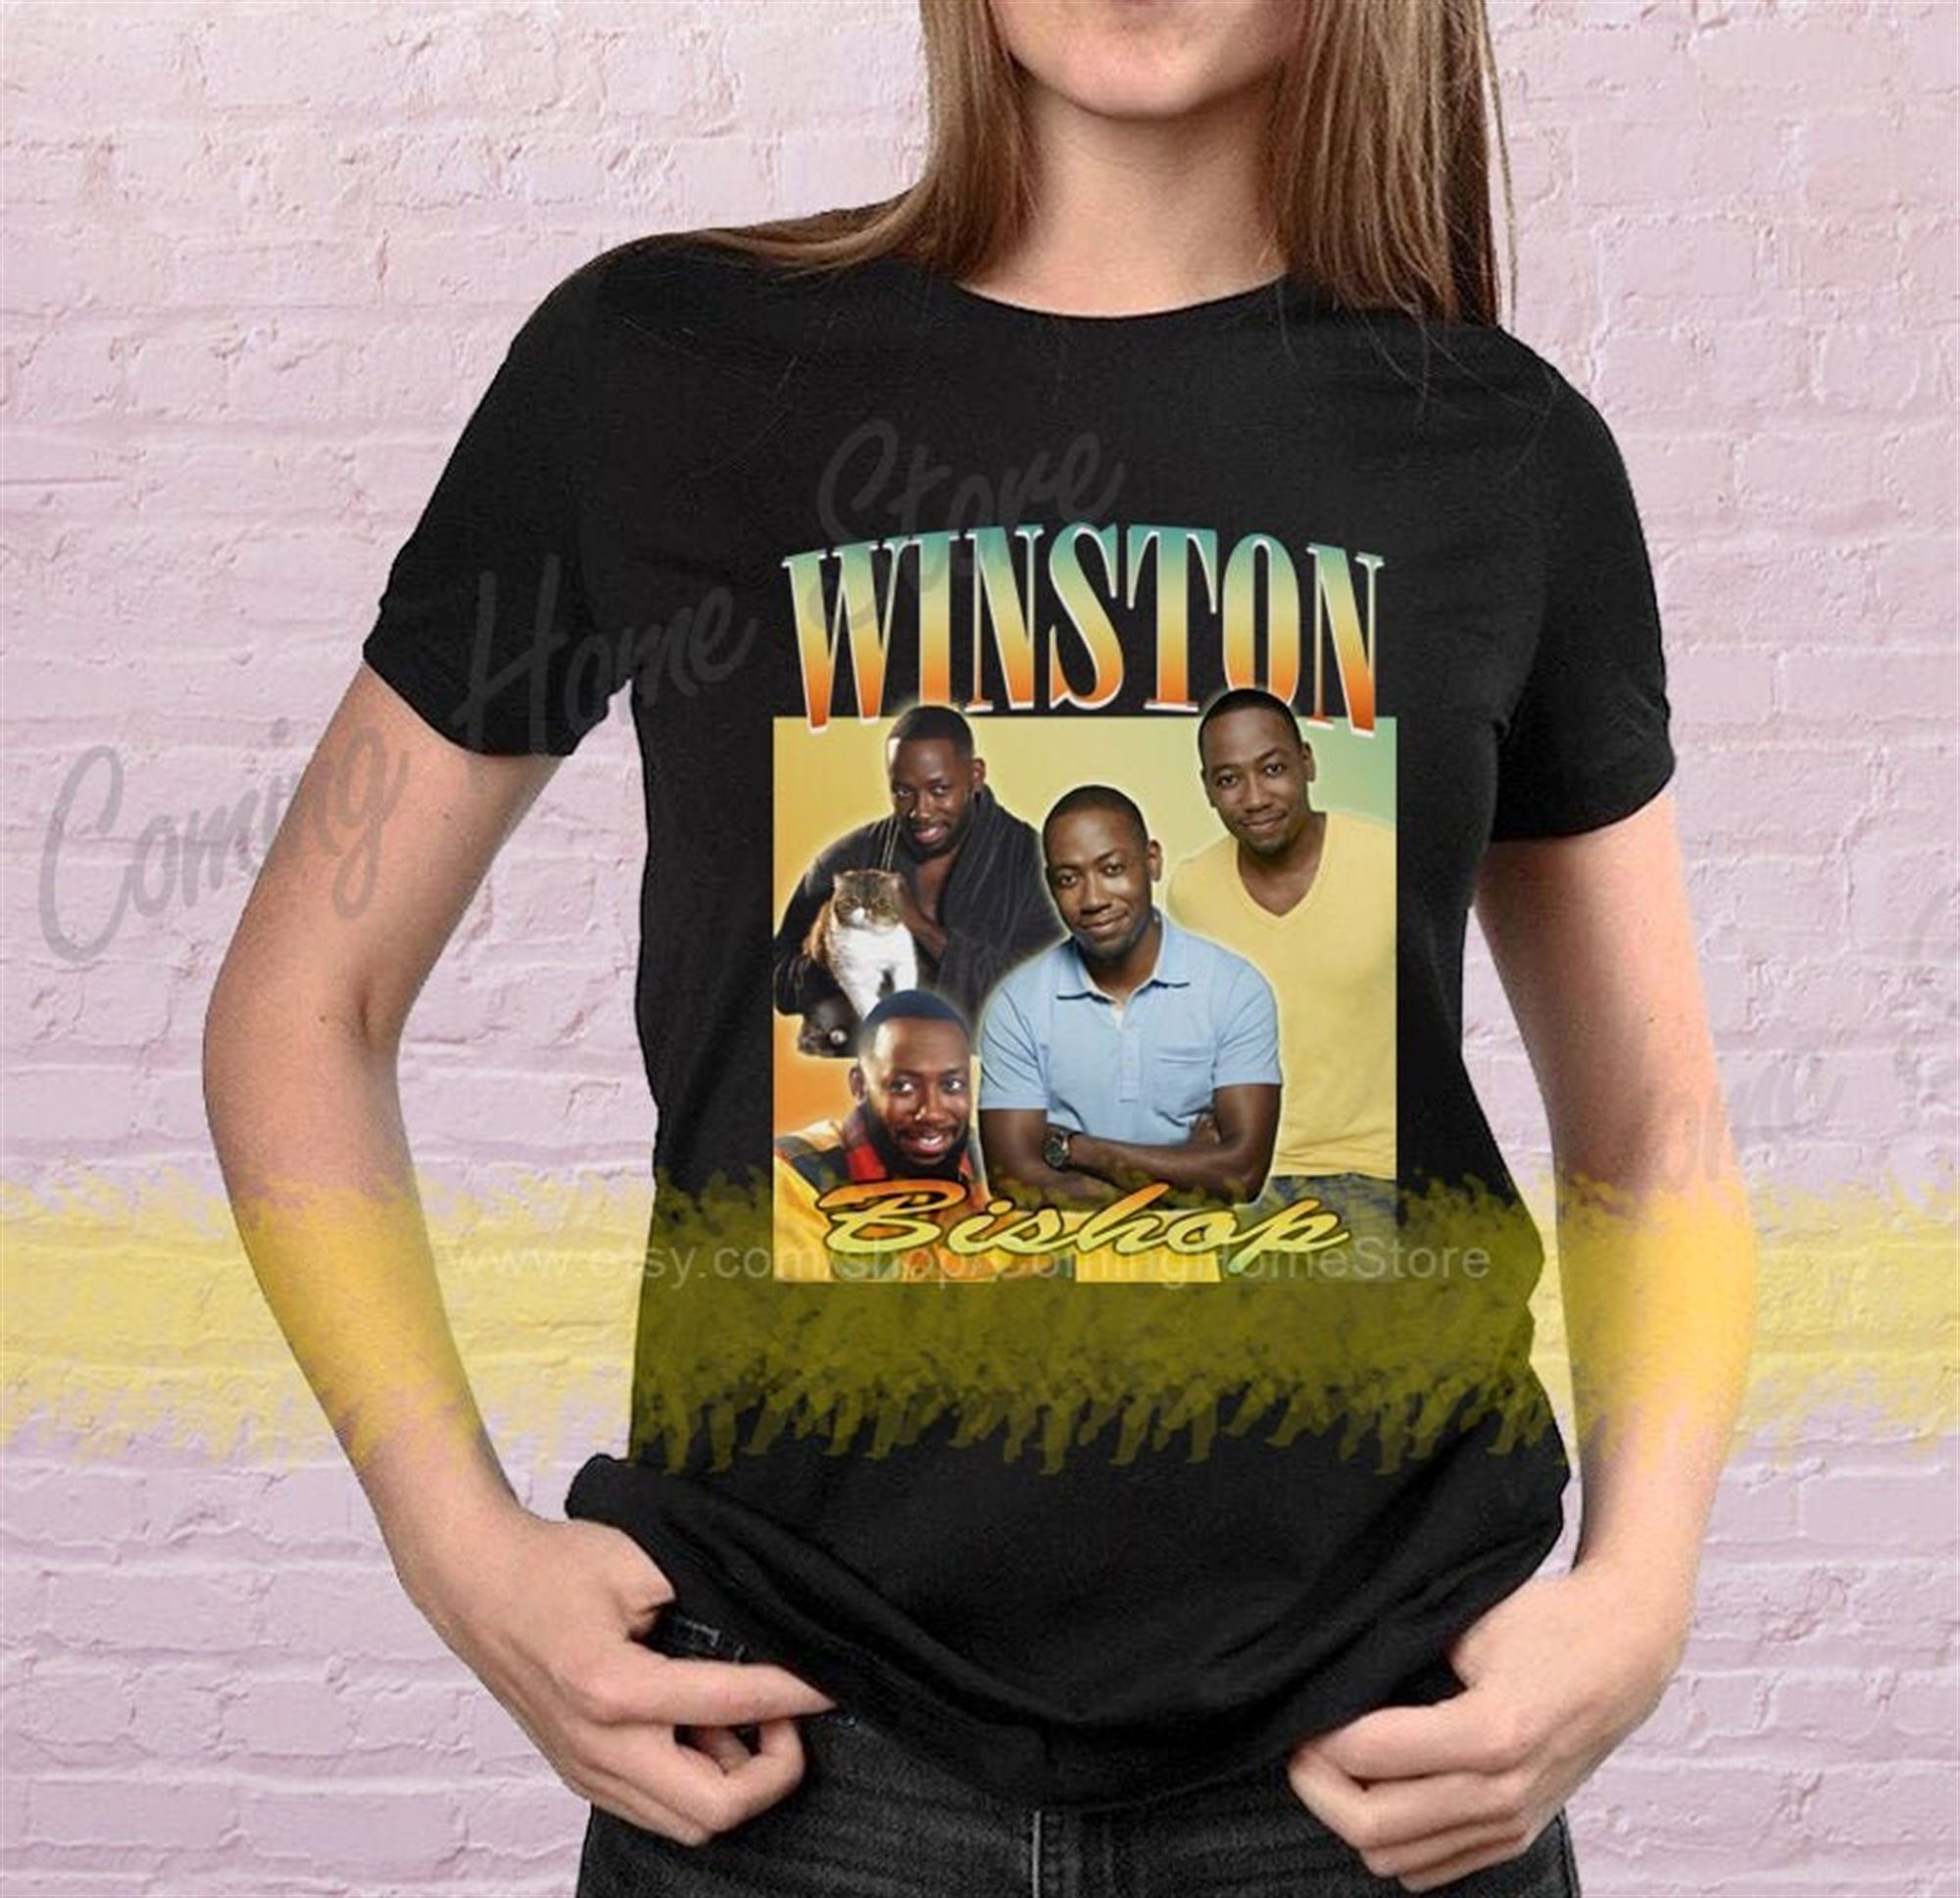 Winston Bishop Shirt Winston New Girl Shirt Vintage Homage Retro T-shirt Unisex And Women Size Tee More Colors